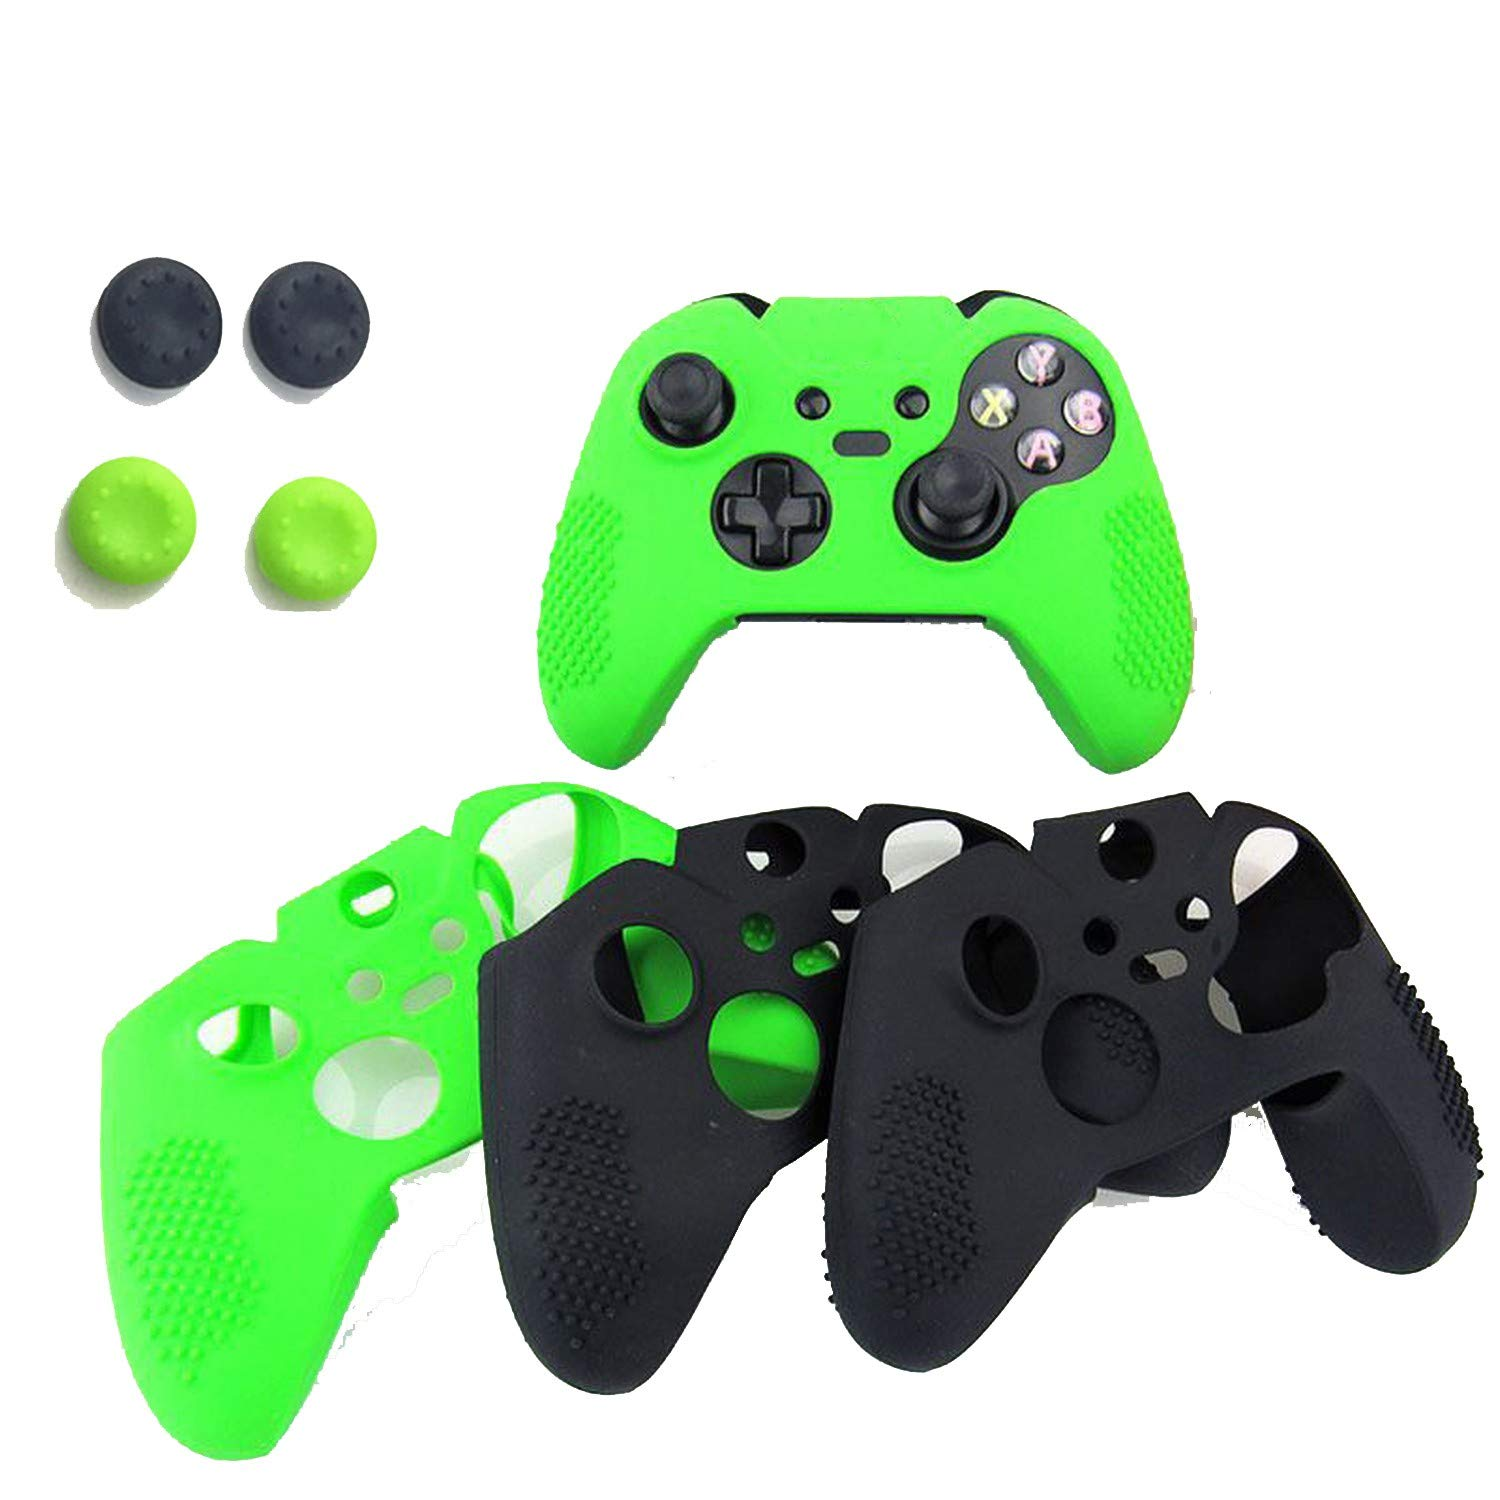 Flexible Antislip Silicone Soft guards Skin Protective Case Cover Protector for Xbox One Controller Xbox one Elite+silicone Case,White